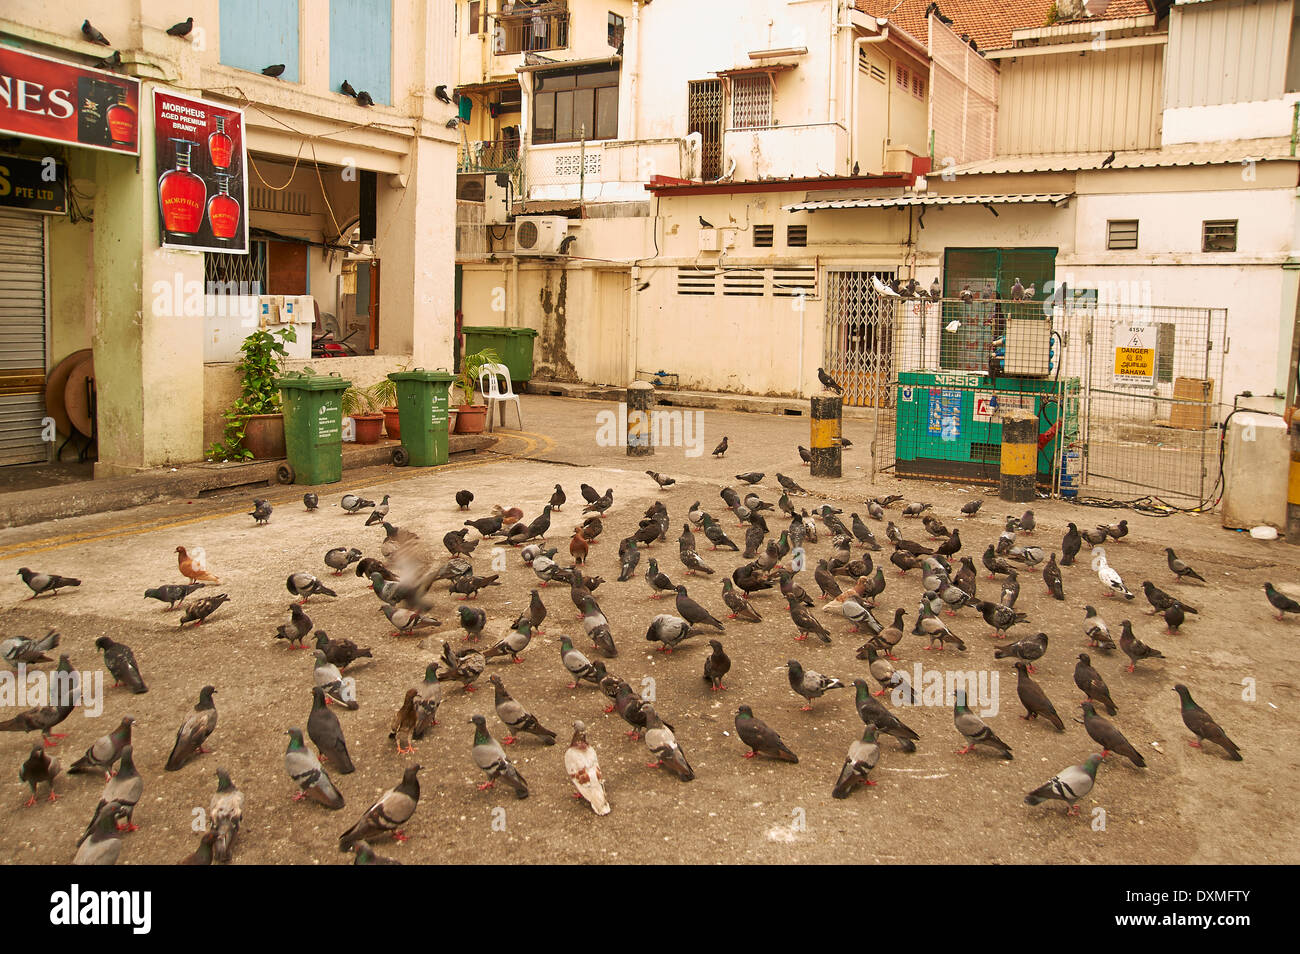 pigeons scratch for food in a courtyard - Stock Image